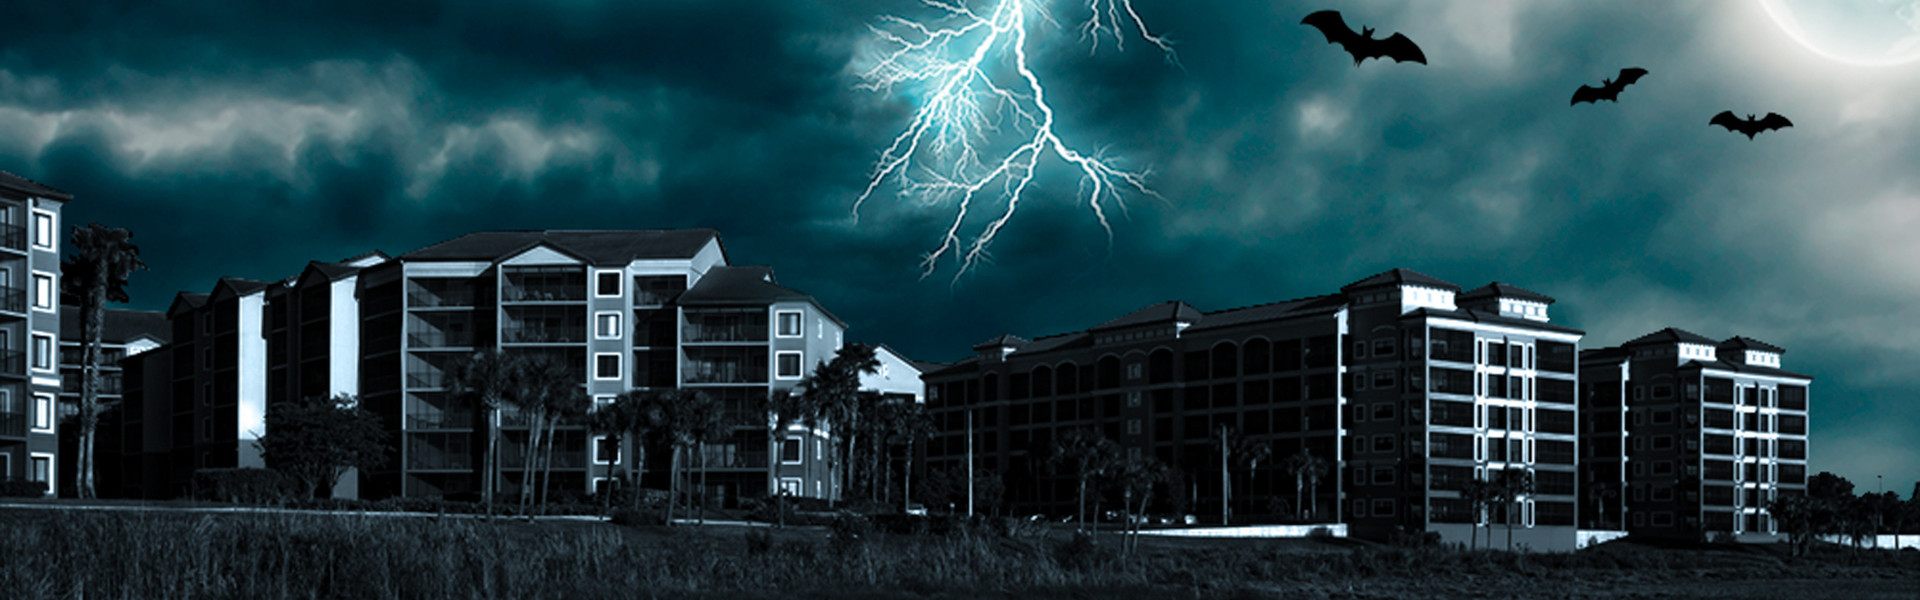 Hotel For Mickey's Not-So-Scary Halloween Party -Spooky image of Westgate Lakes Resort & Spa